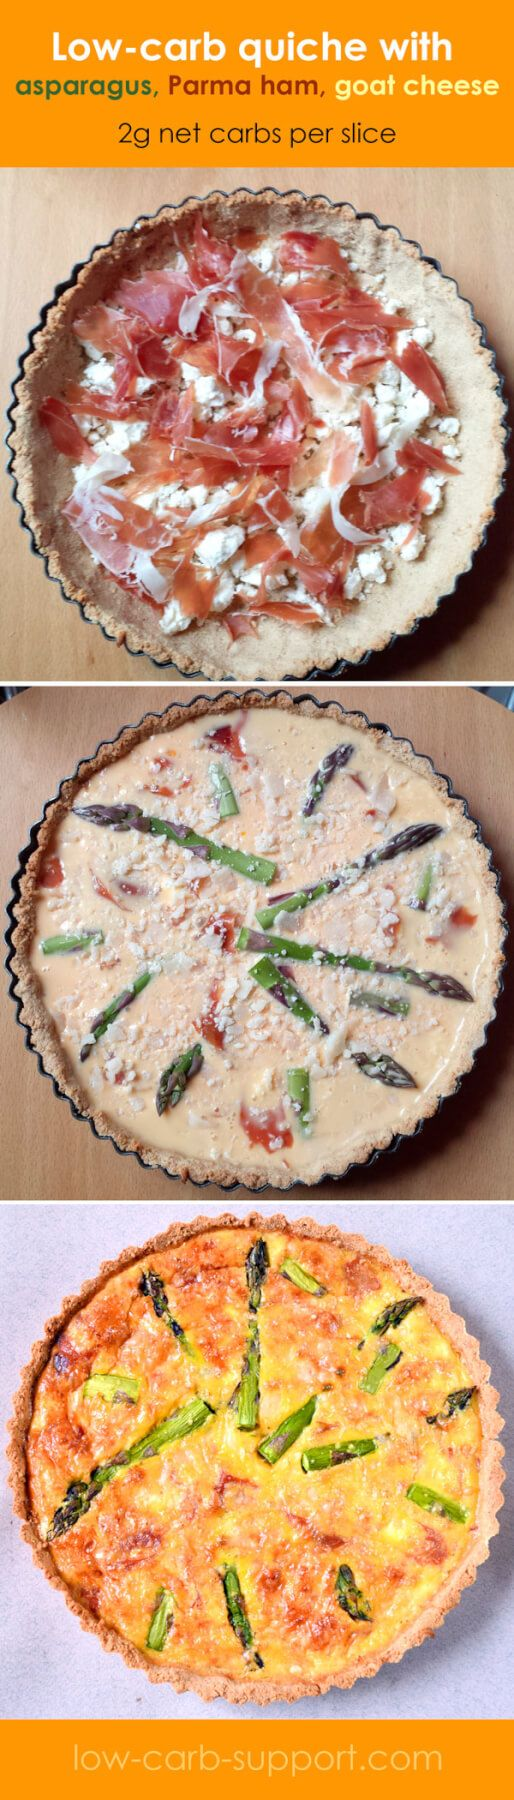 Keto Quiche with Asparagus, Parma Ham and Goat Cheese Recipe